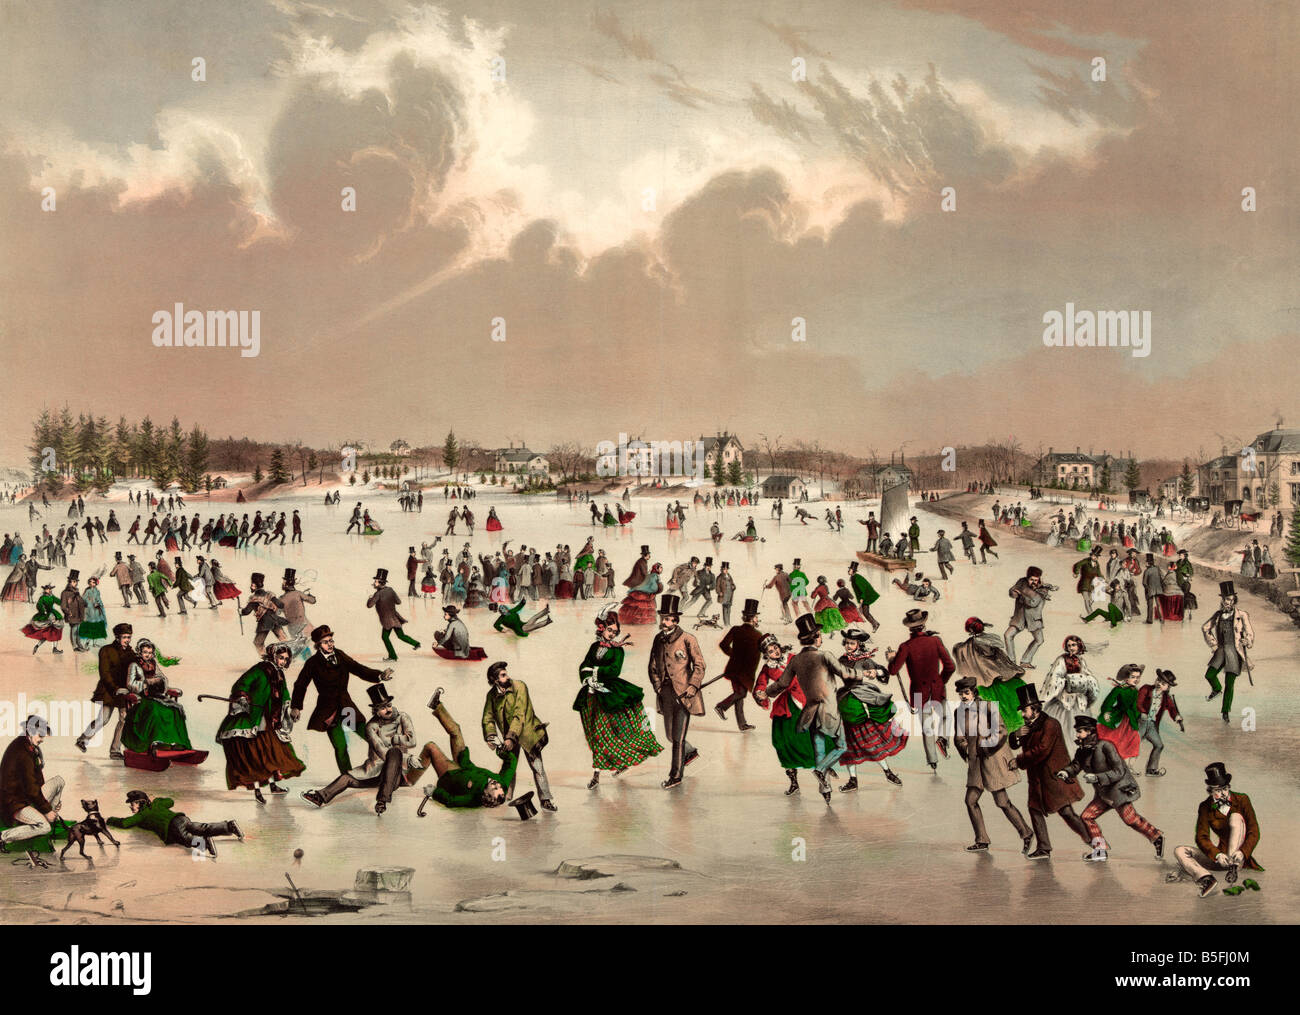 Ice skating on frozen pond in the mid 1800's - Stock Image